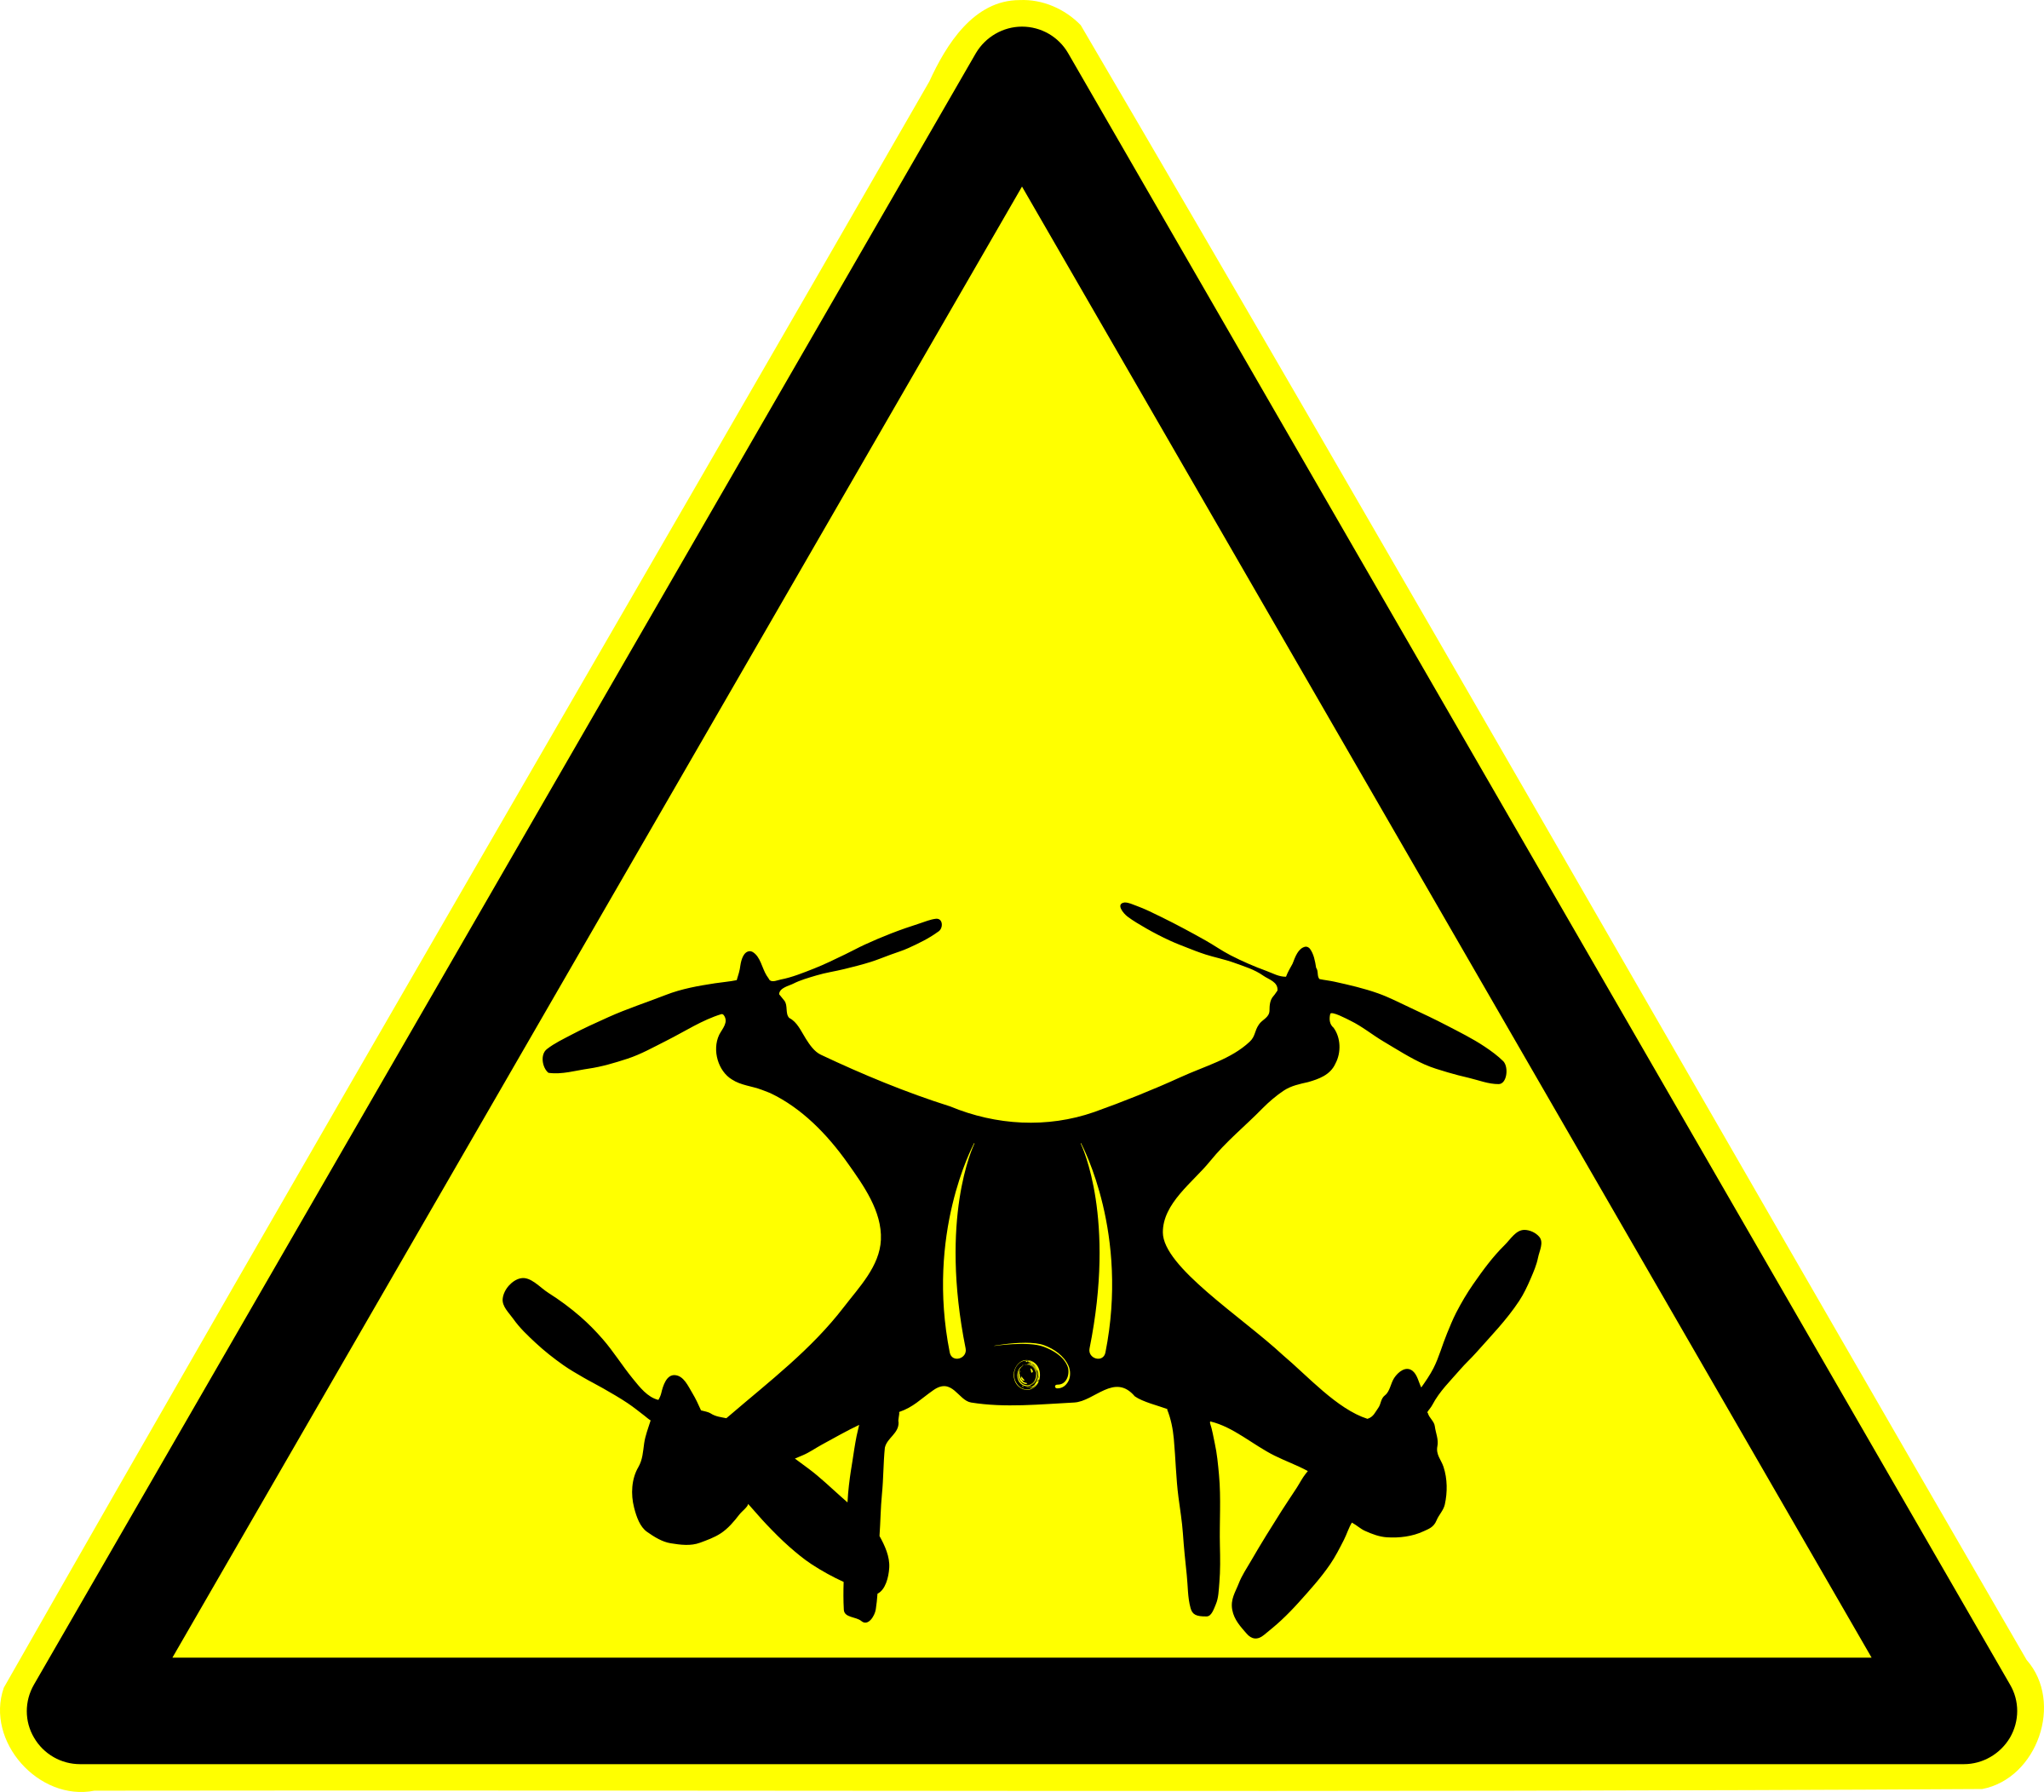 Drone Warning - Peligro Dron by laftello